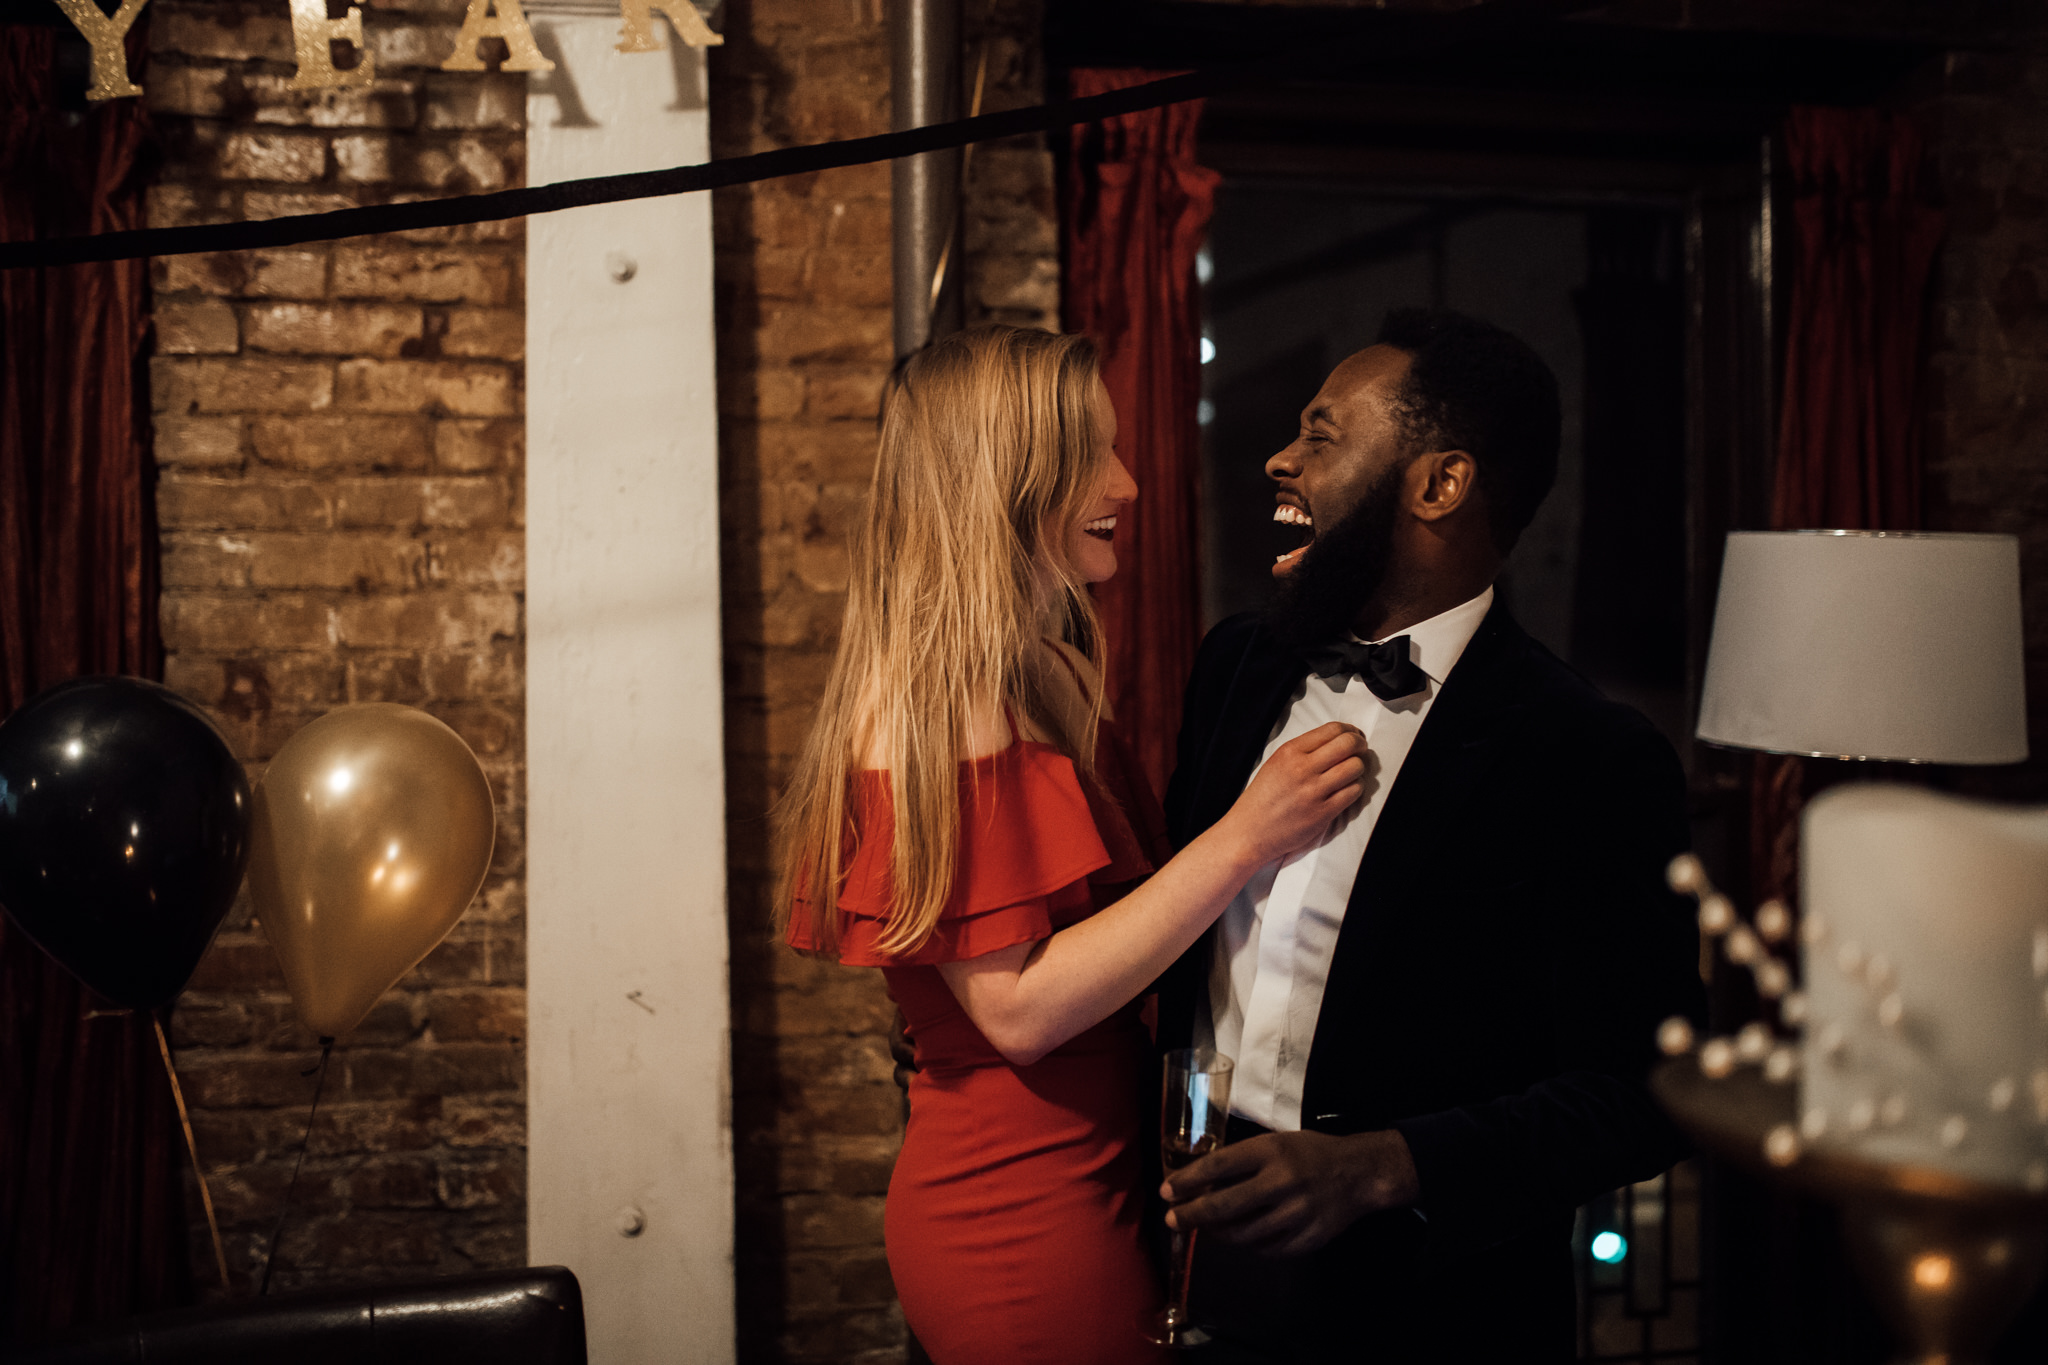 memphis-engagement-photographer-new-years-eve-proposal-cassie-cook-photography-54.jpg